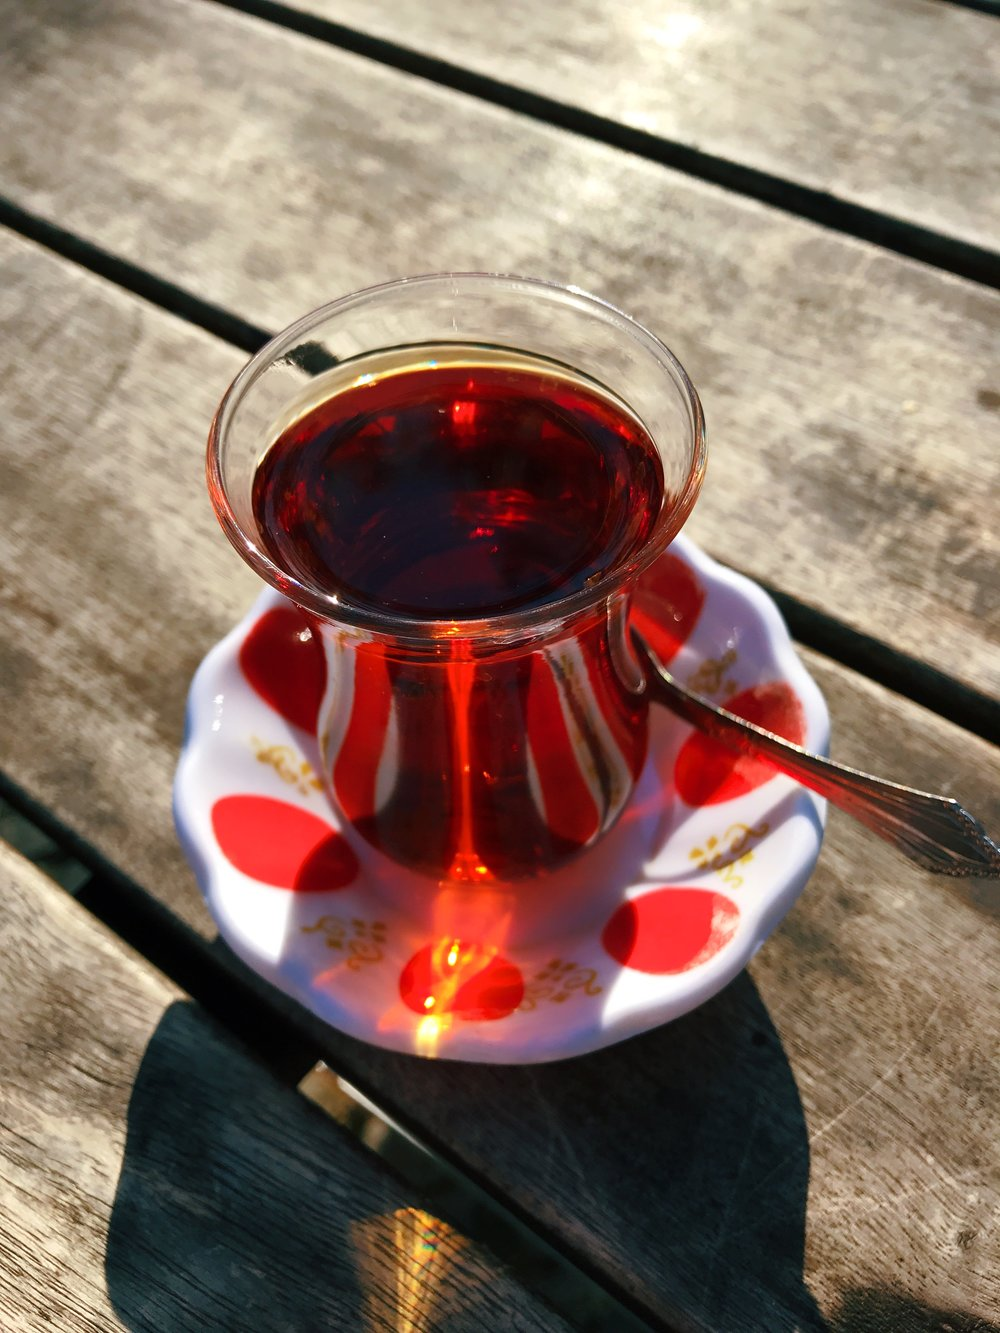 Turkish tea. In 1961, West Germany invited Turkish workers to come work temporarily because they needed labor. They stayed and now hipster Kreuzberg is also known as 'Little Istanbul.'